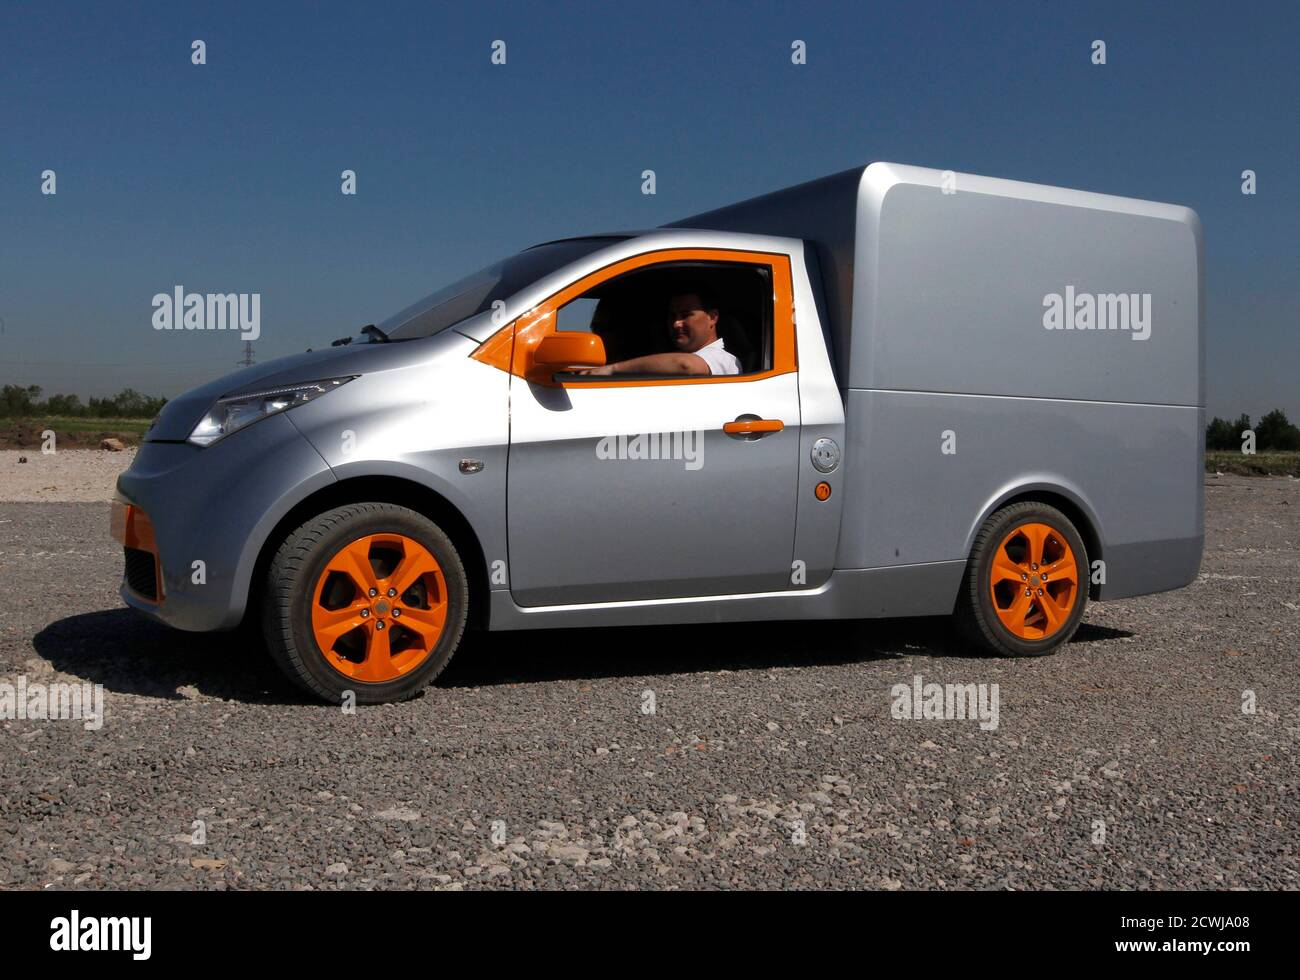 """A Furgon automobile is displayed during a ceremony to start the construction of the plant to produce Russian new car brand """"e"""" automobiles, designed by Onexim Group company, owned by billionaire Mikhail Prokhorov, outside St. Petersburg June 8, 2011. Russian new car brand """"e"""" (""""e with two dots above"""" is the seventh letter in Russian alphabet) automobiles will become the world's cheapest hybrids, priced at $10,000, according to the company's representatives.  REUTERS/Alexander Demianchuk  (RUSSIA - Tags: BUSINESS TRANSPORT CONSTRUCTION) Stock Photo"""